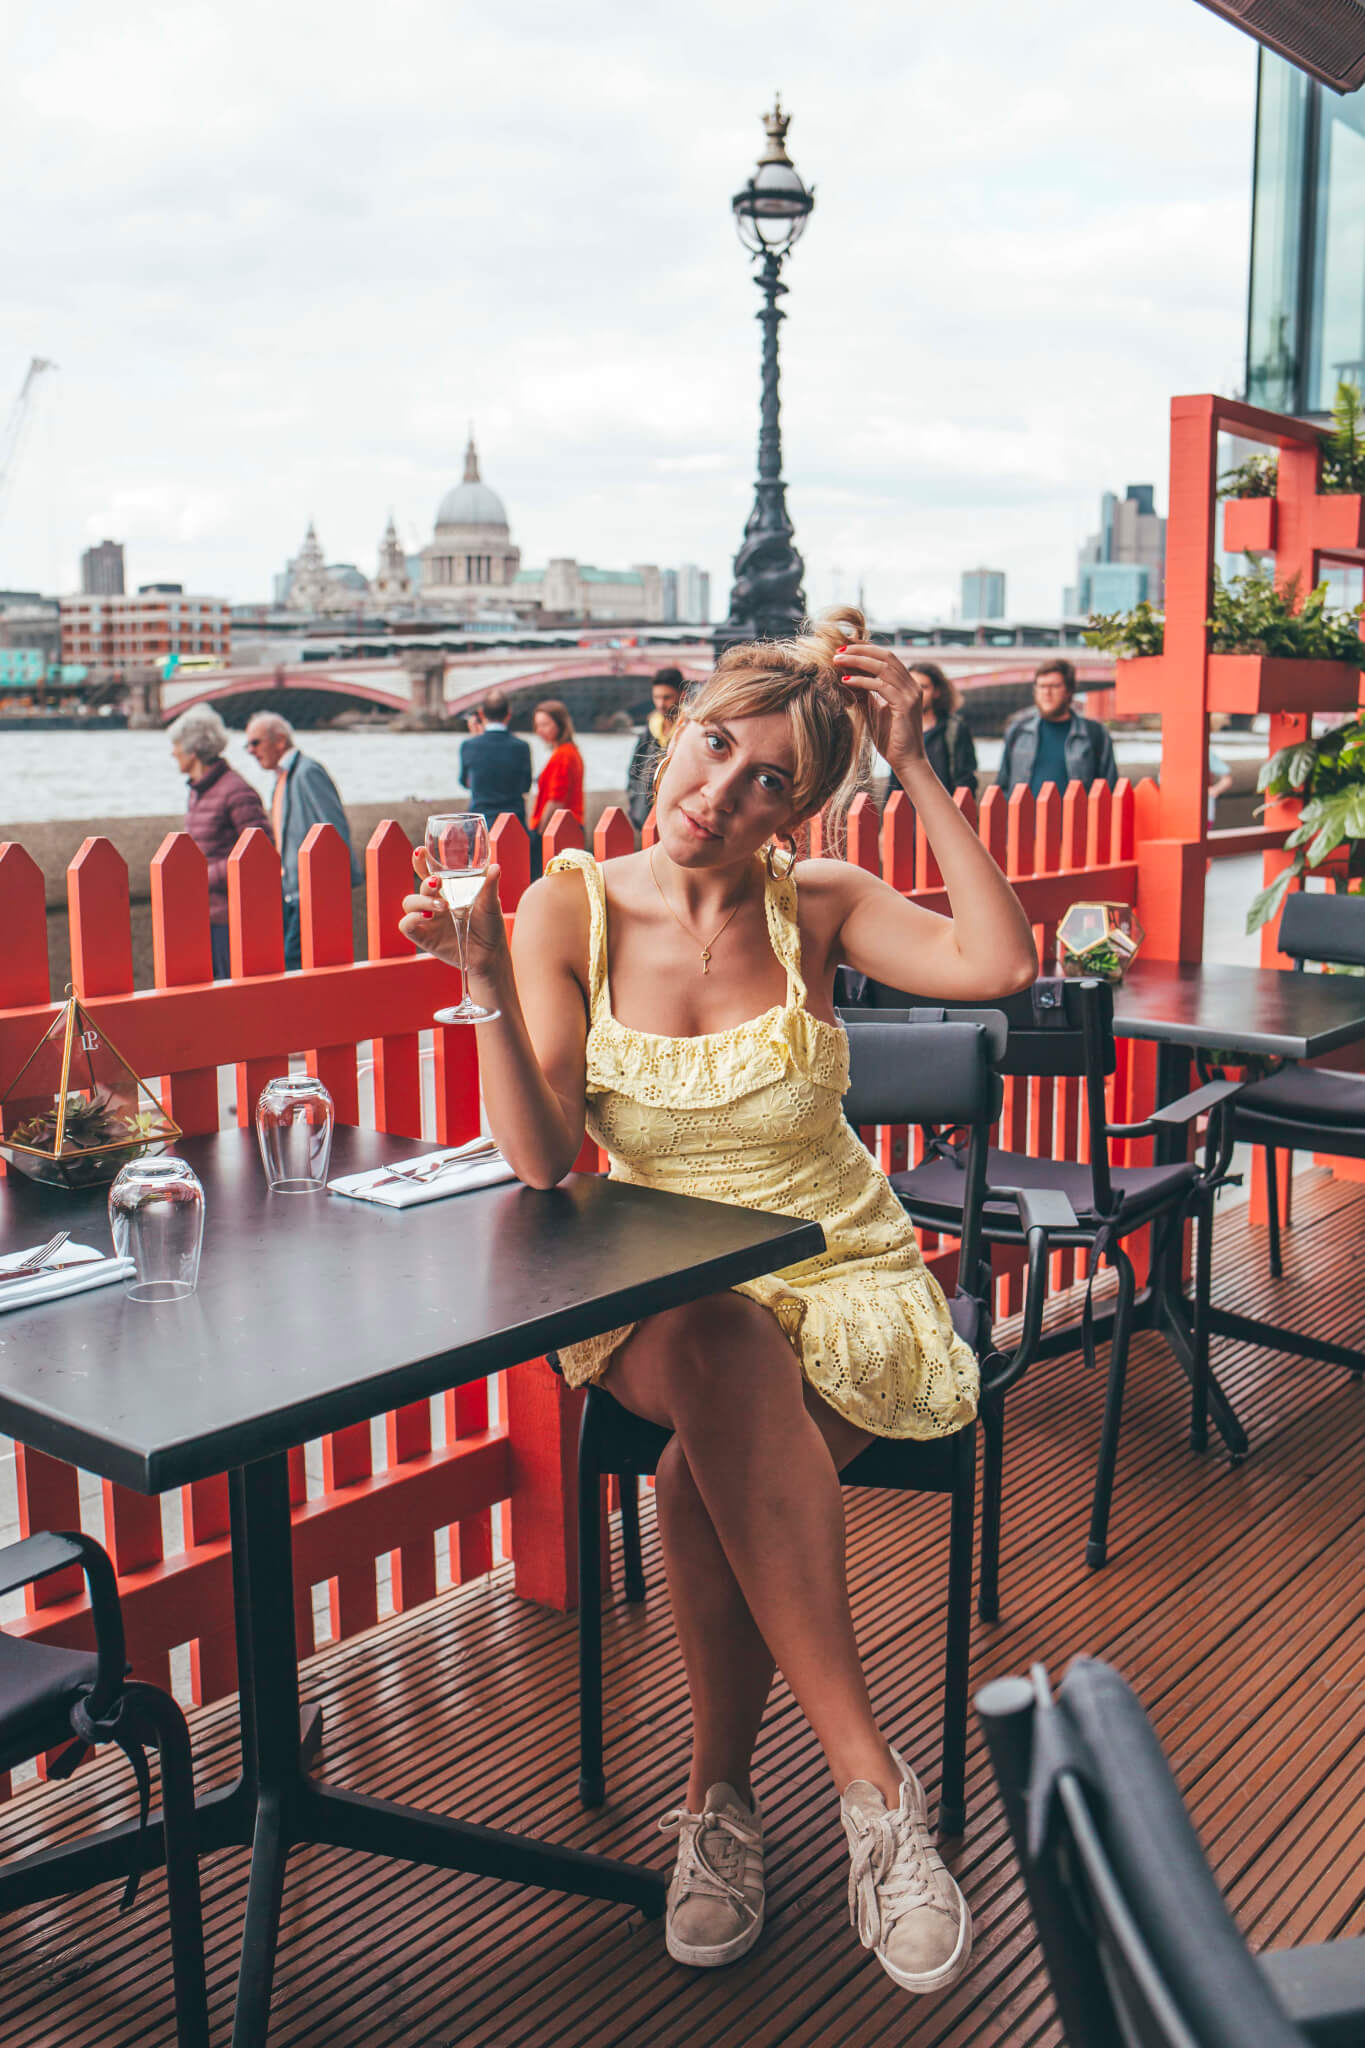 Riverside restaurants London - Dinner at Sea Containers